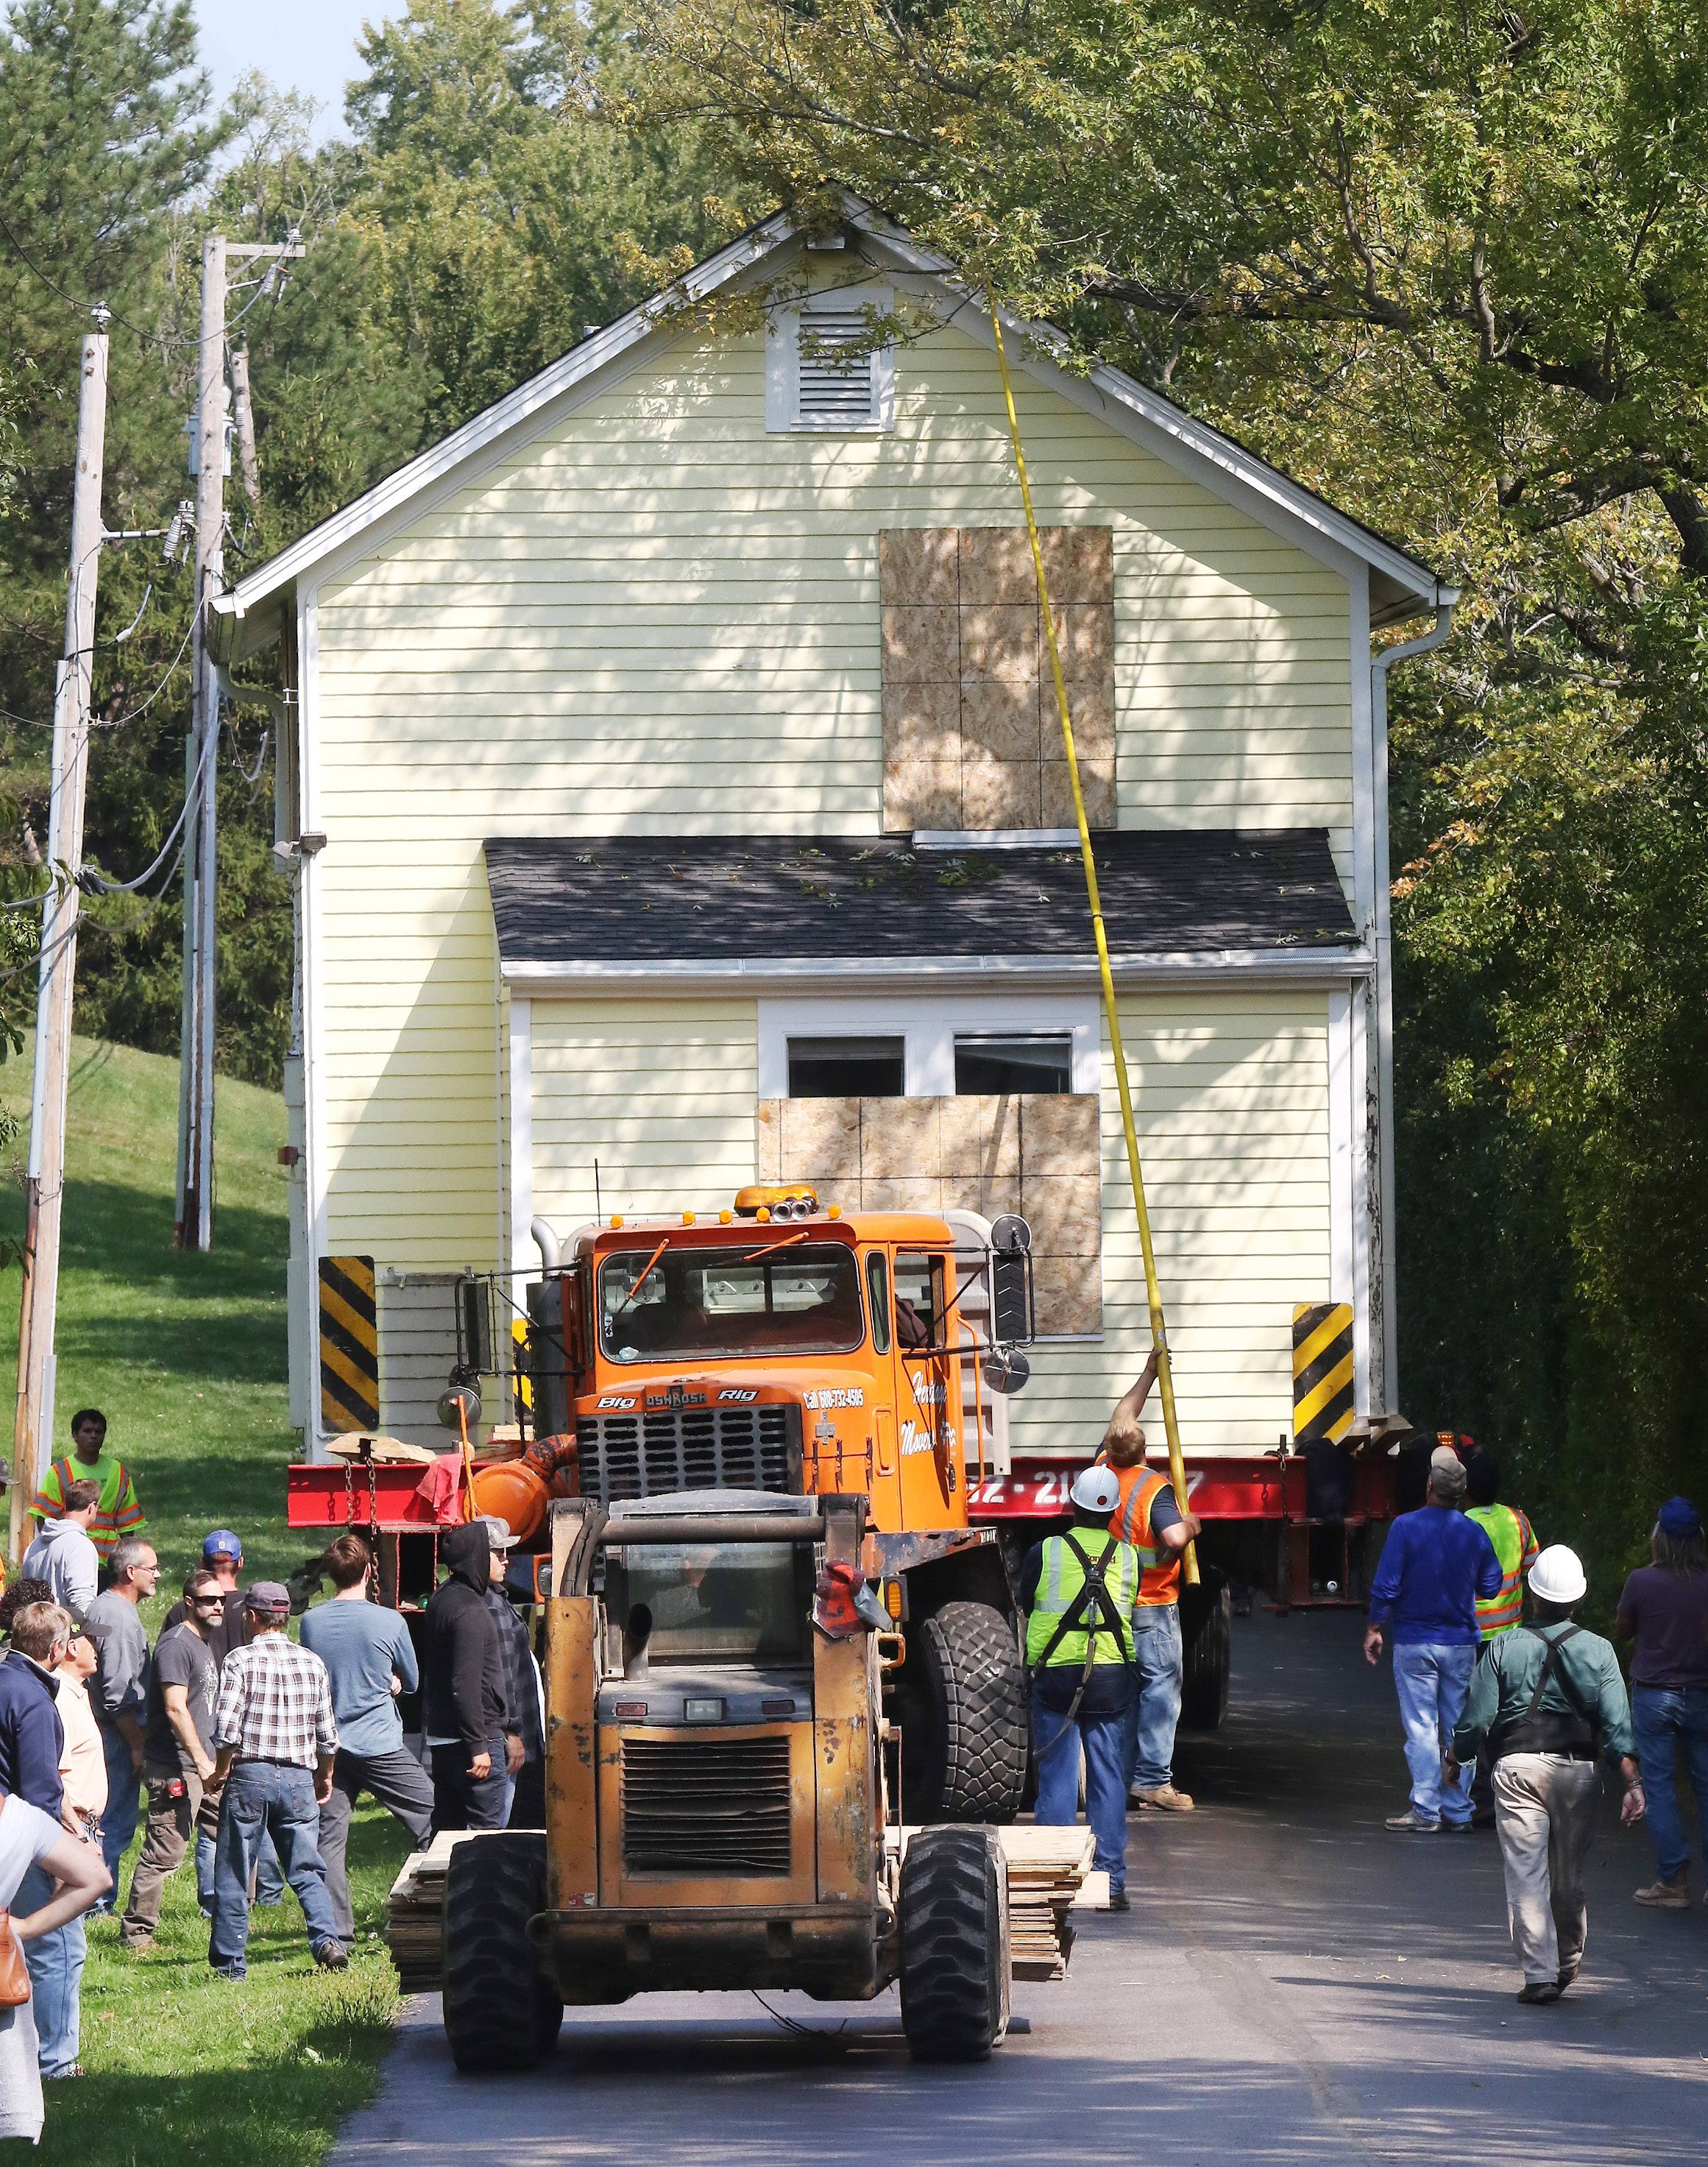 Rerouting utility lines and dodging tree limbs required a house move to proceed at a snail's pace Sunday. The 19th century house paraded through Barrington en route to a new site in Barrington Hills.